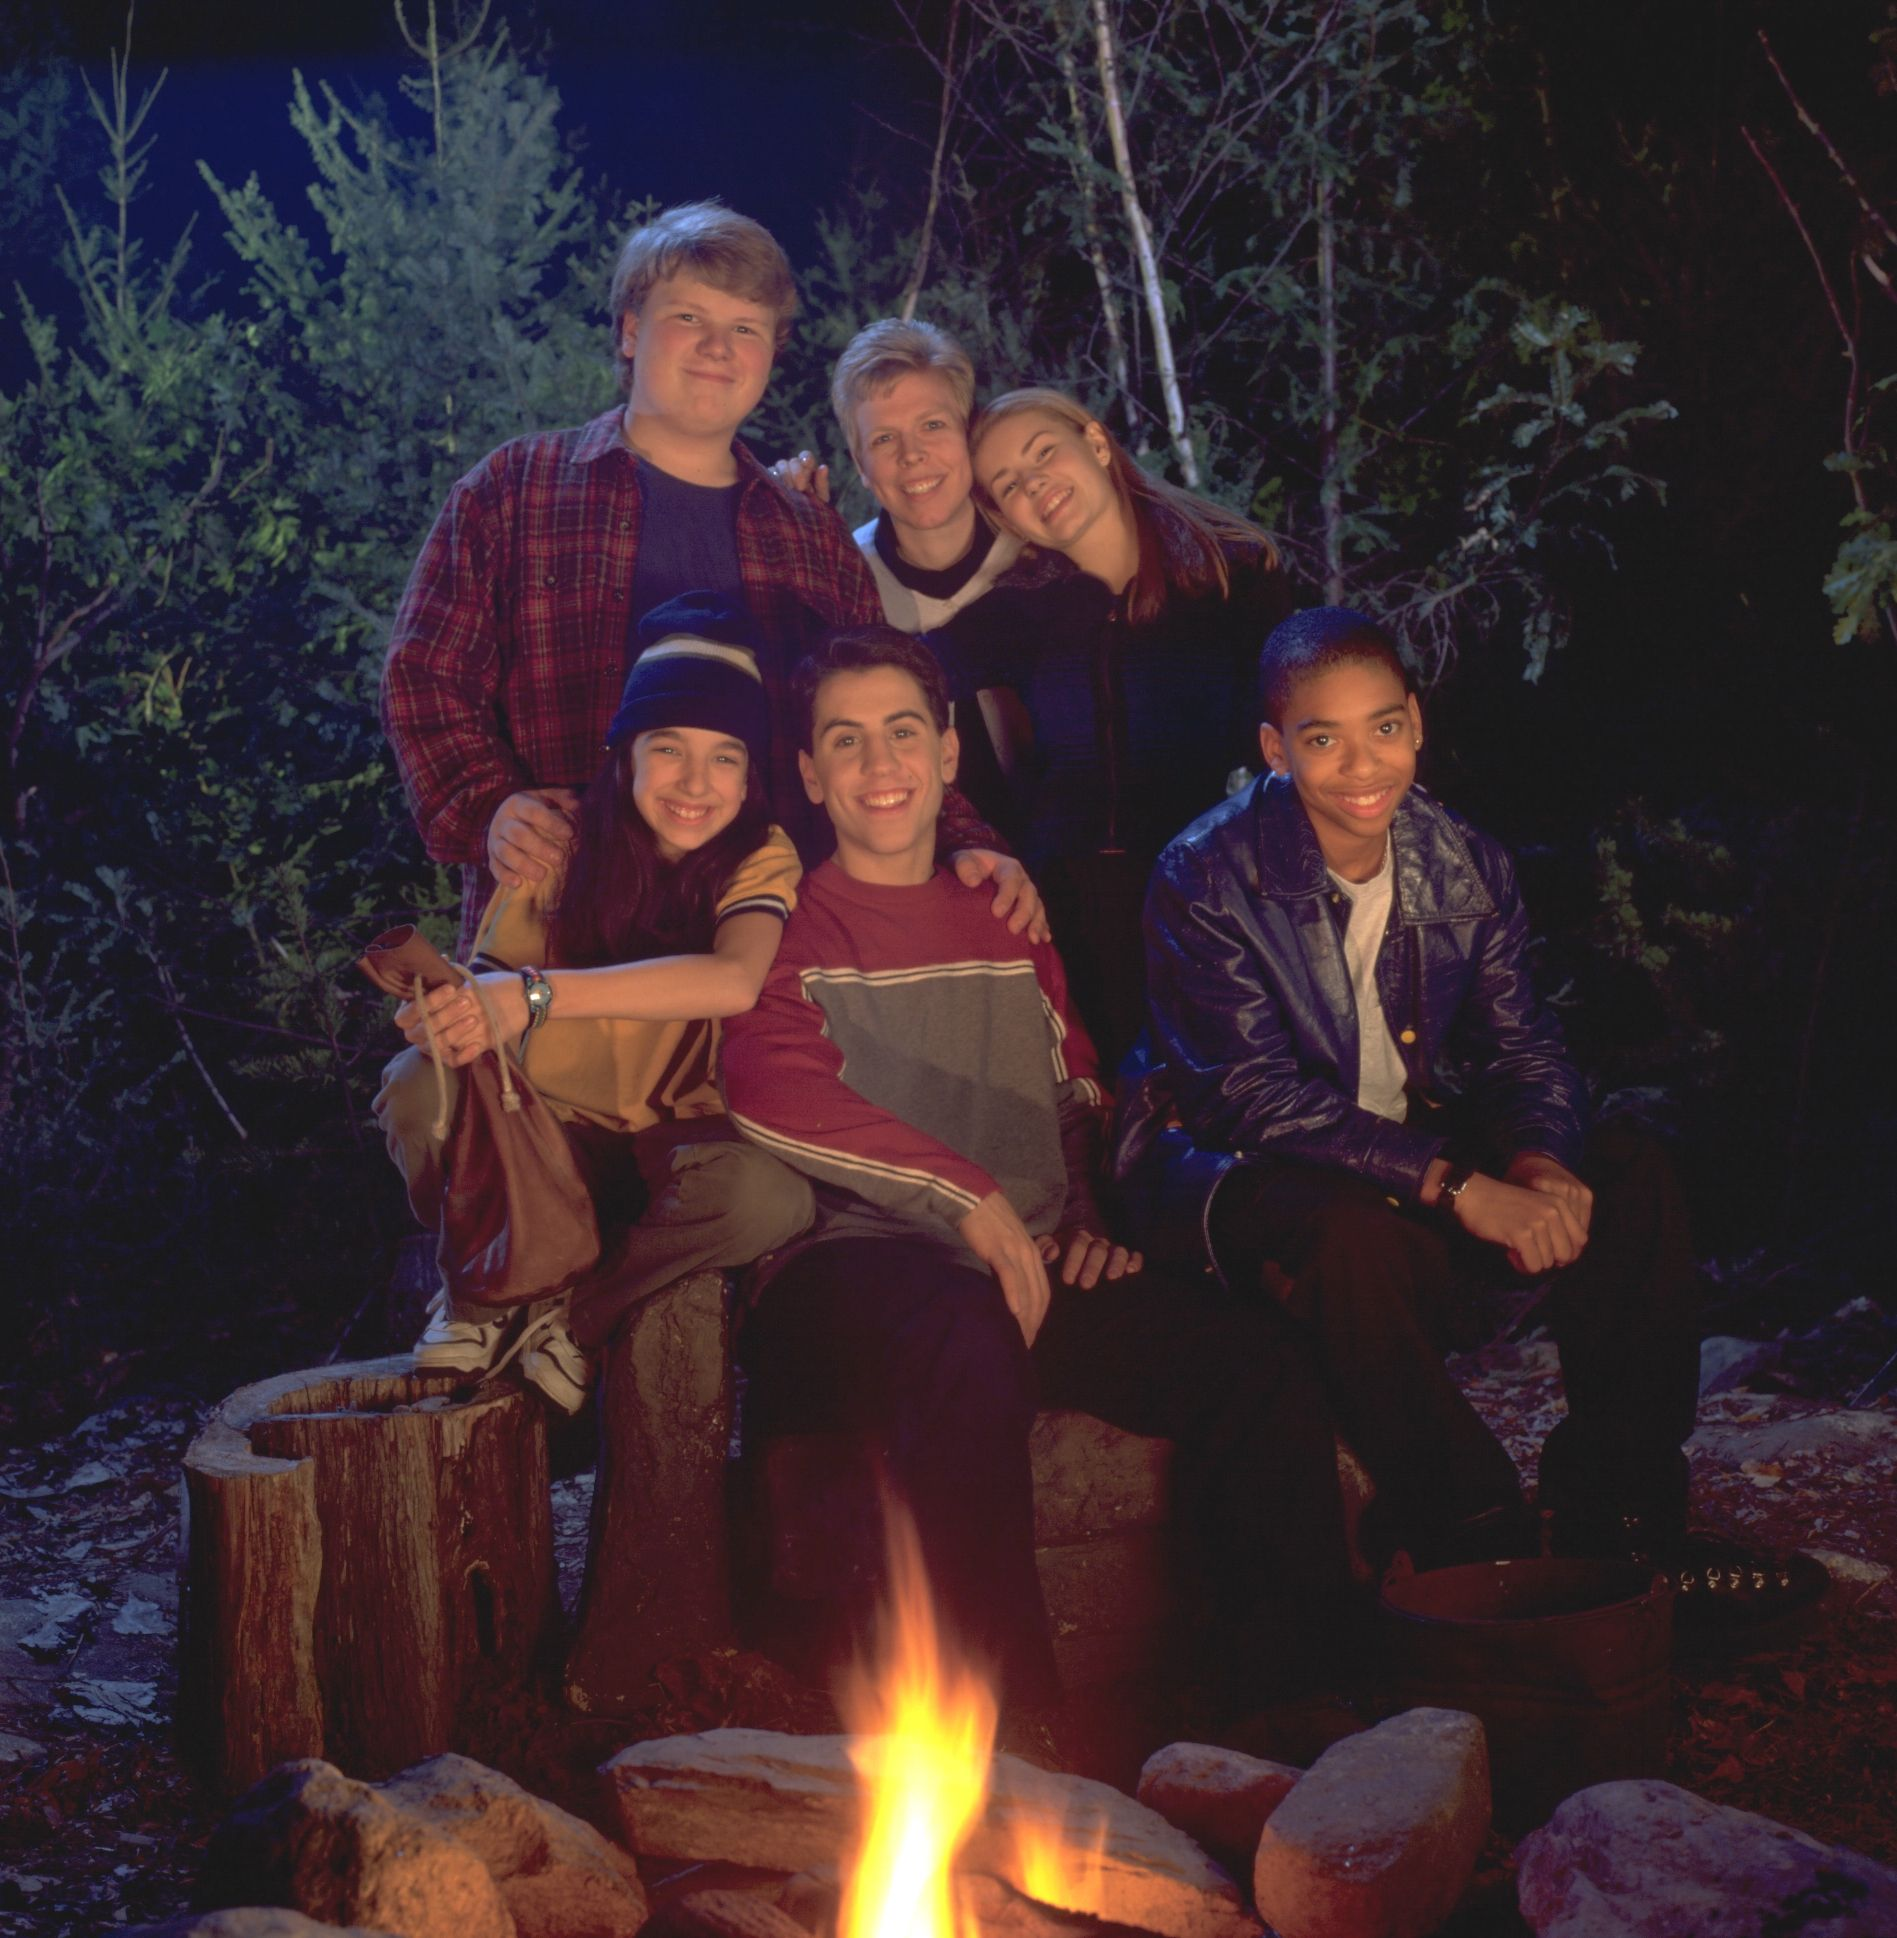 Best Old Nickelodeon Shows Are You Afraid of the Dark?